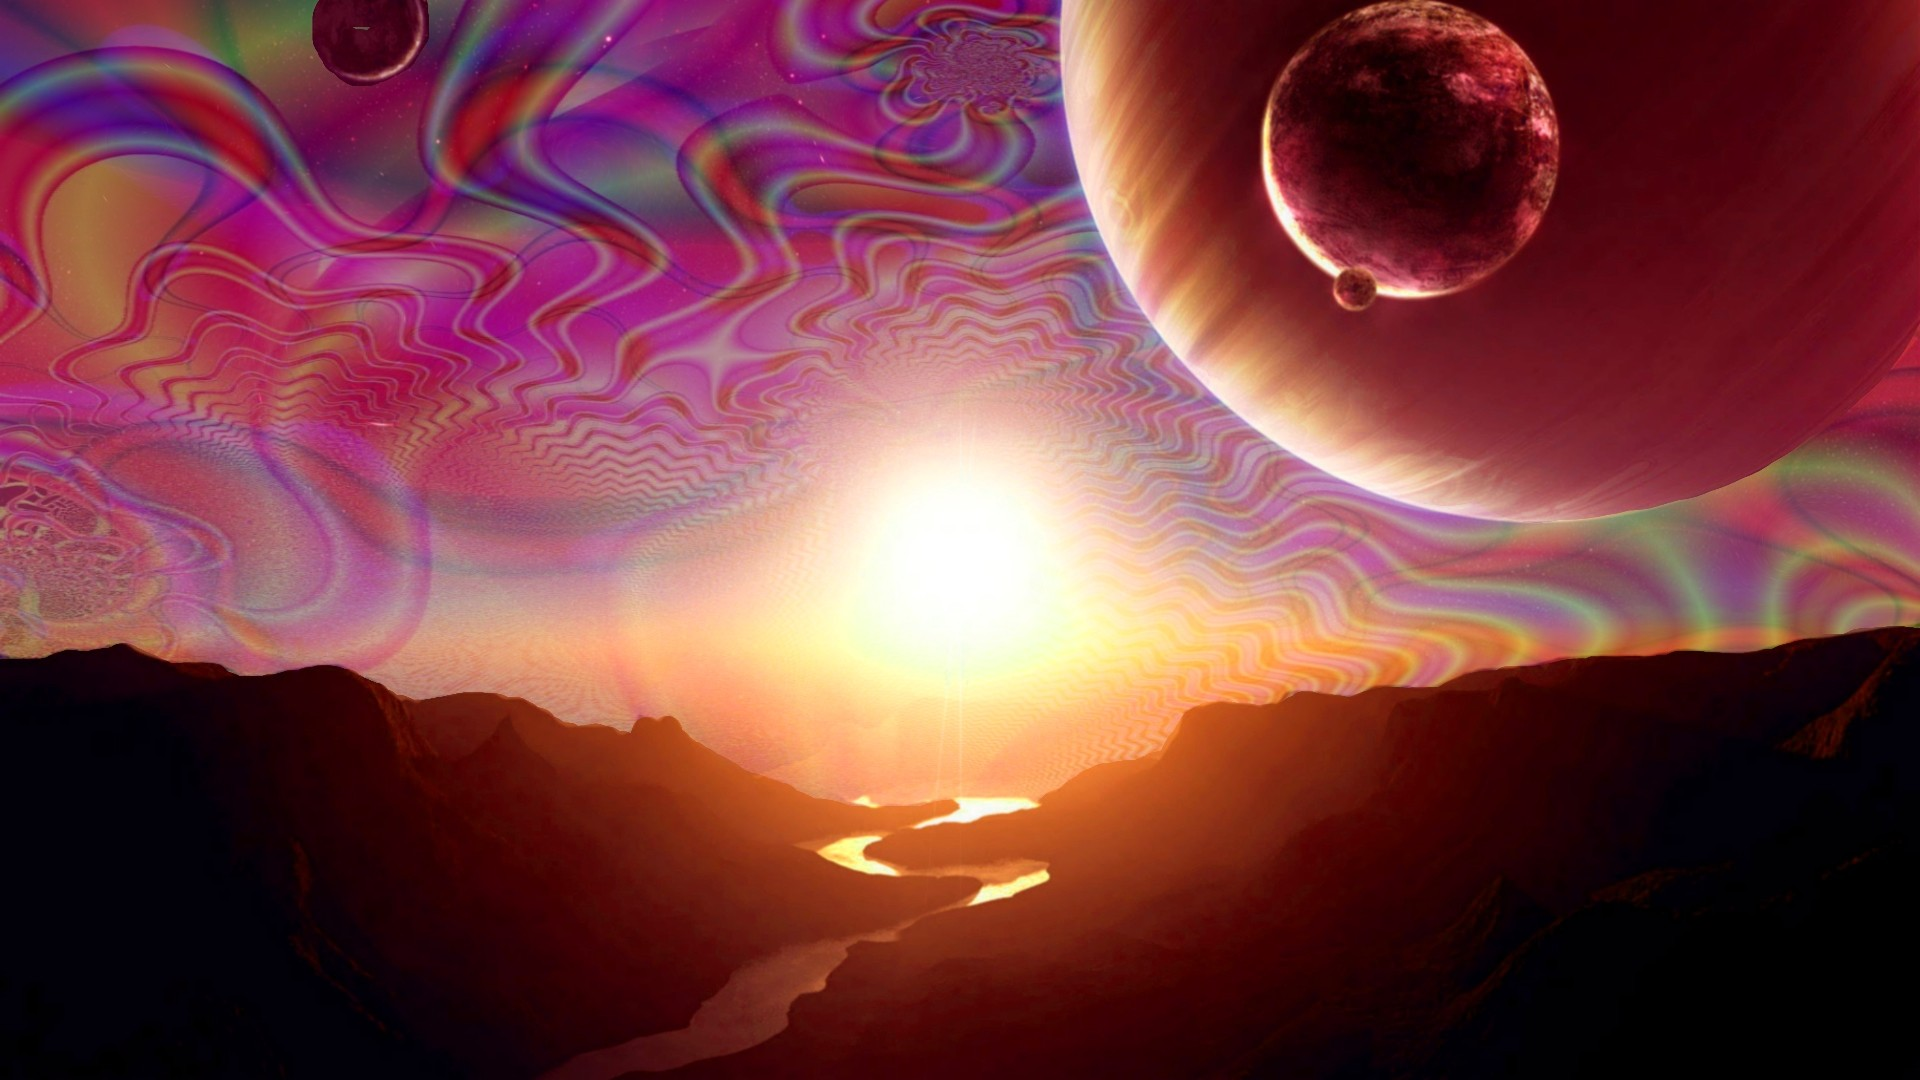 psychedelic hd 1080 wallpapers sexy - photo #27